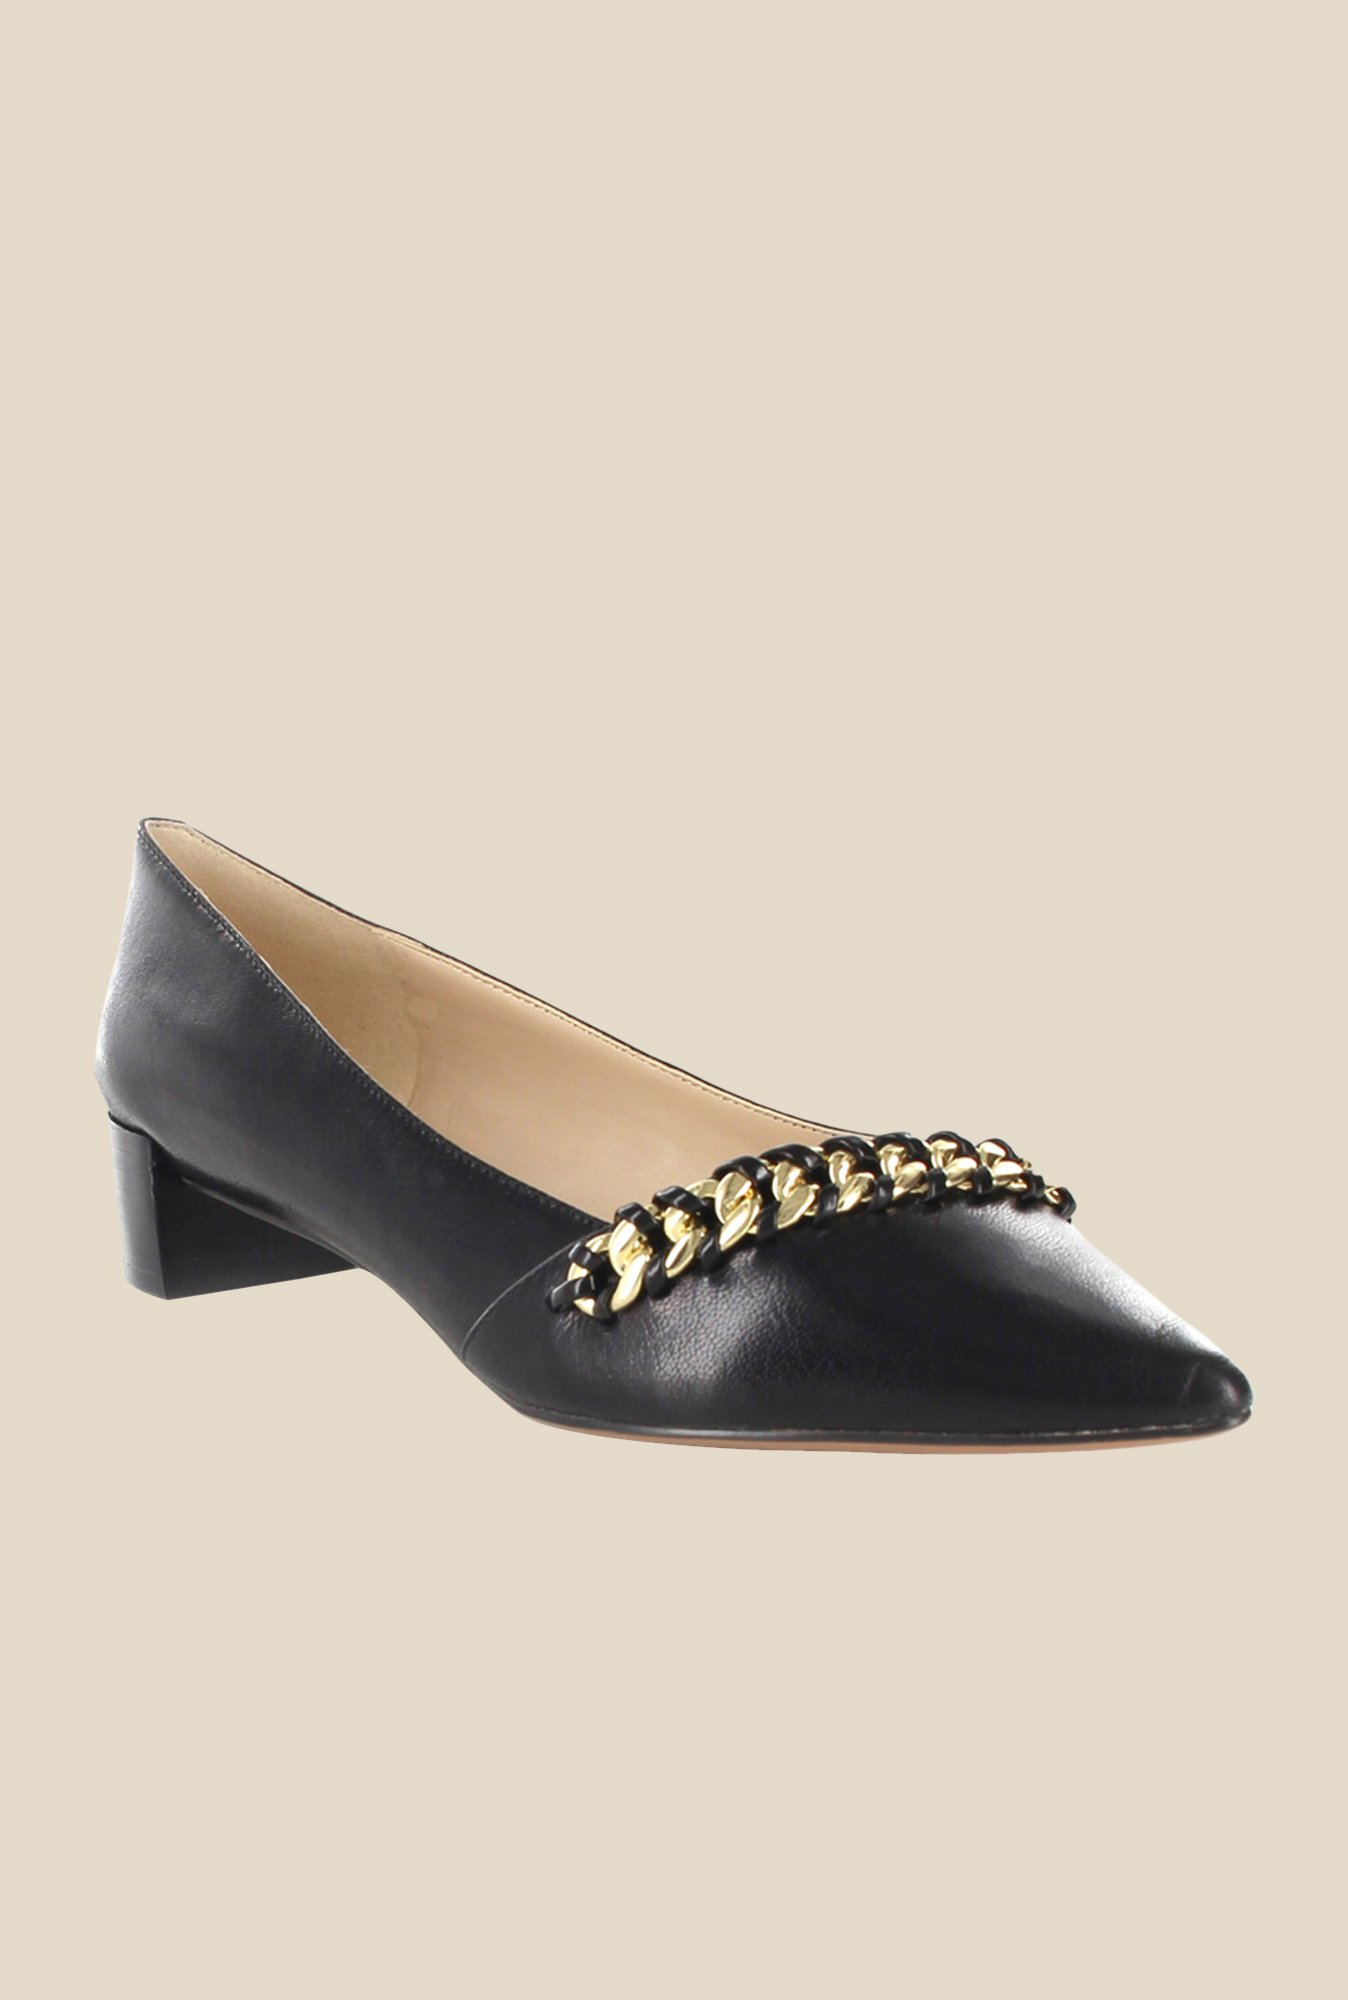 Nine West Black & Golden Block Heeled Pumps